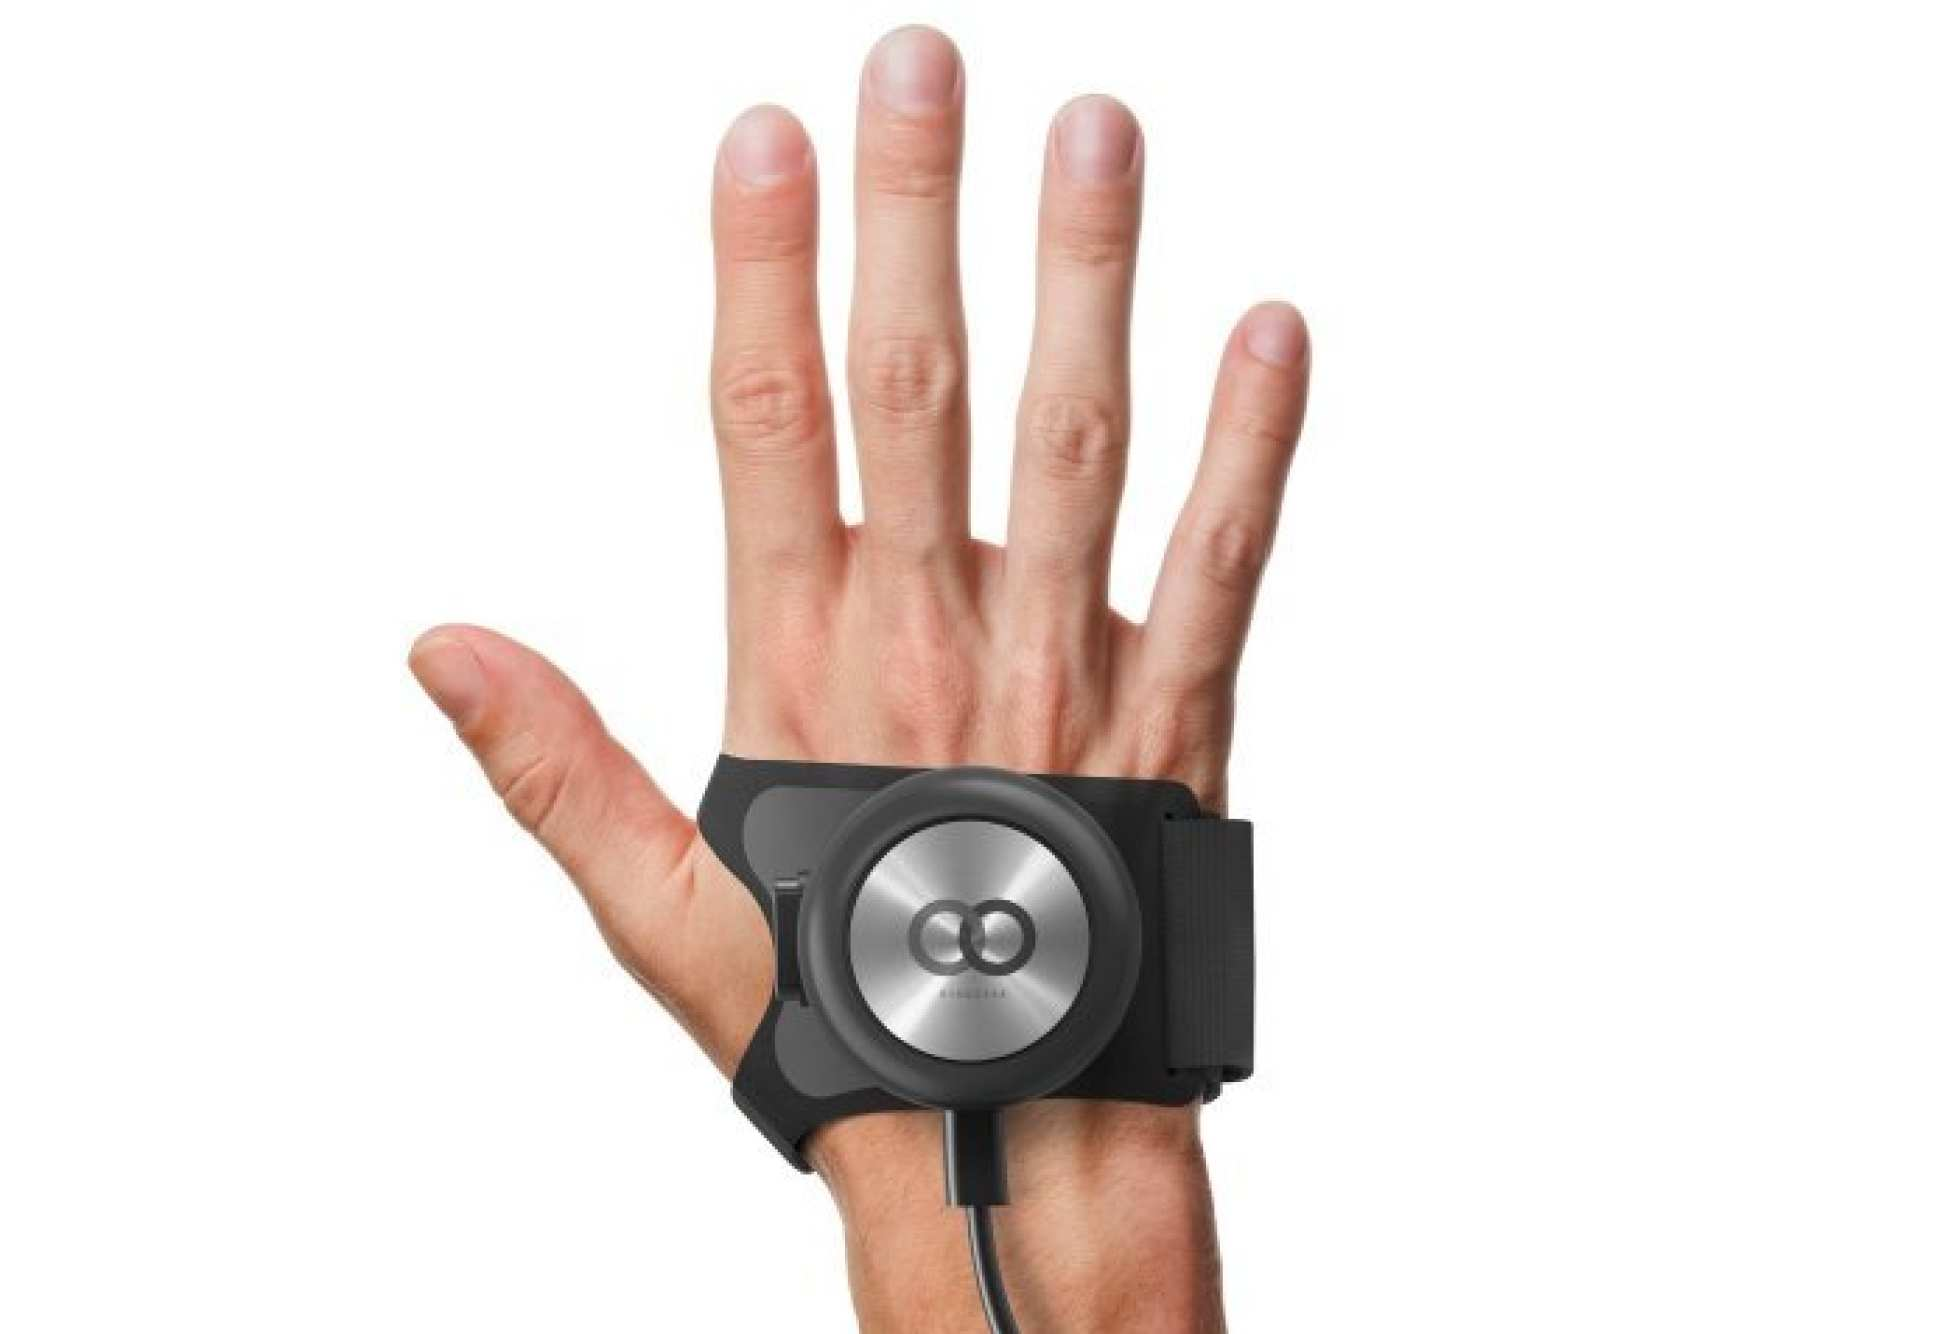 The team are developing the Gyroglove, a device that helps stabilise the hands of people with tremors